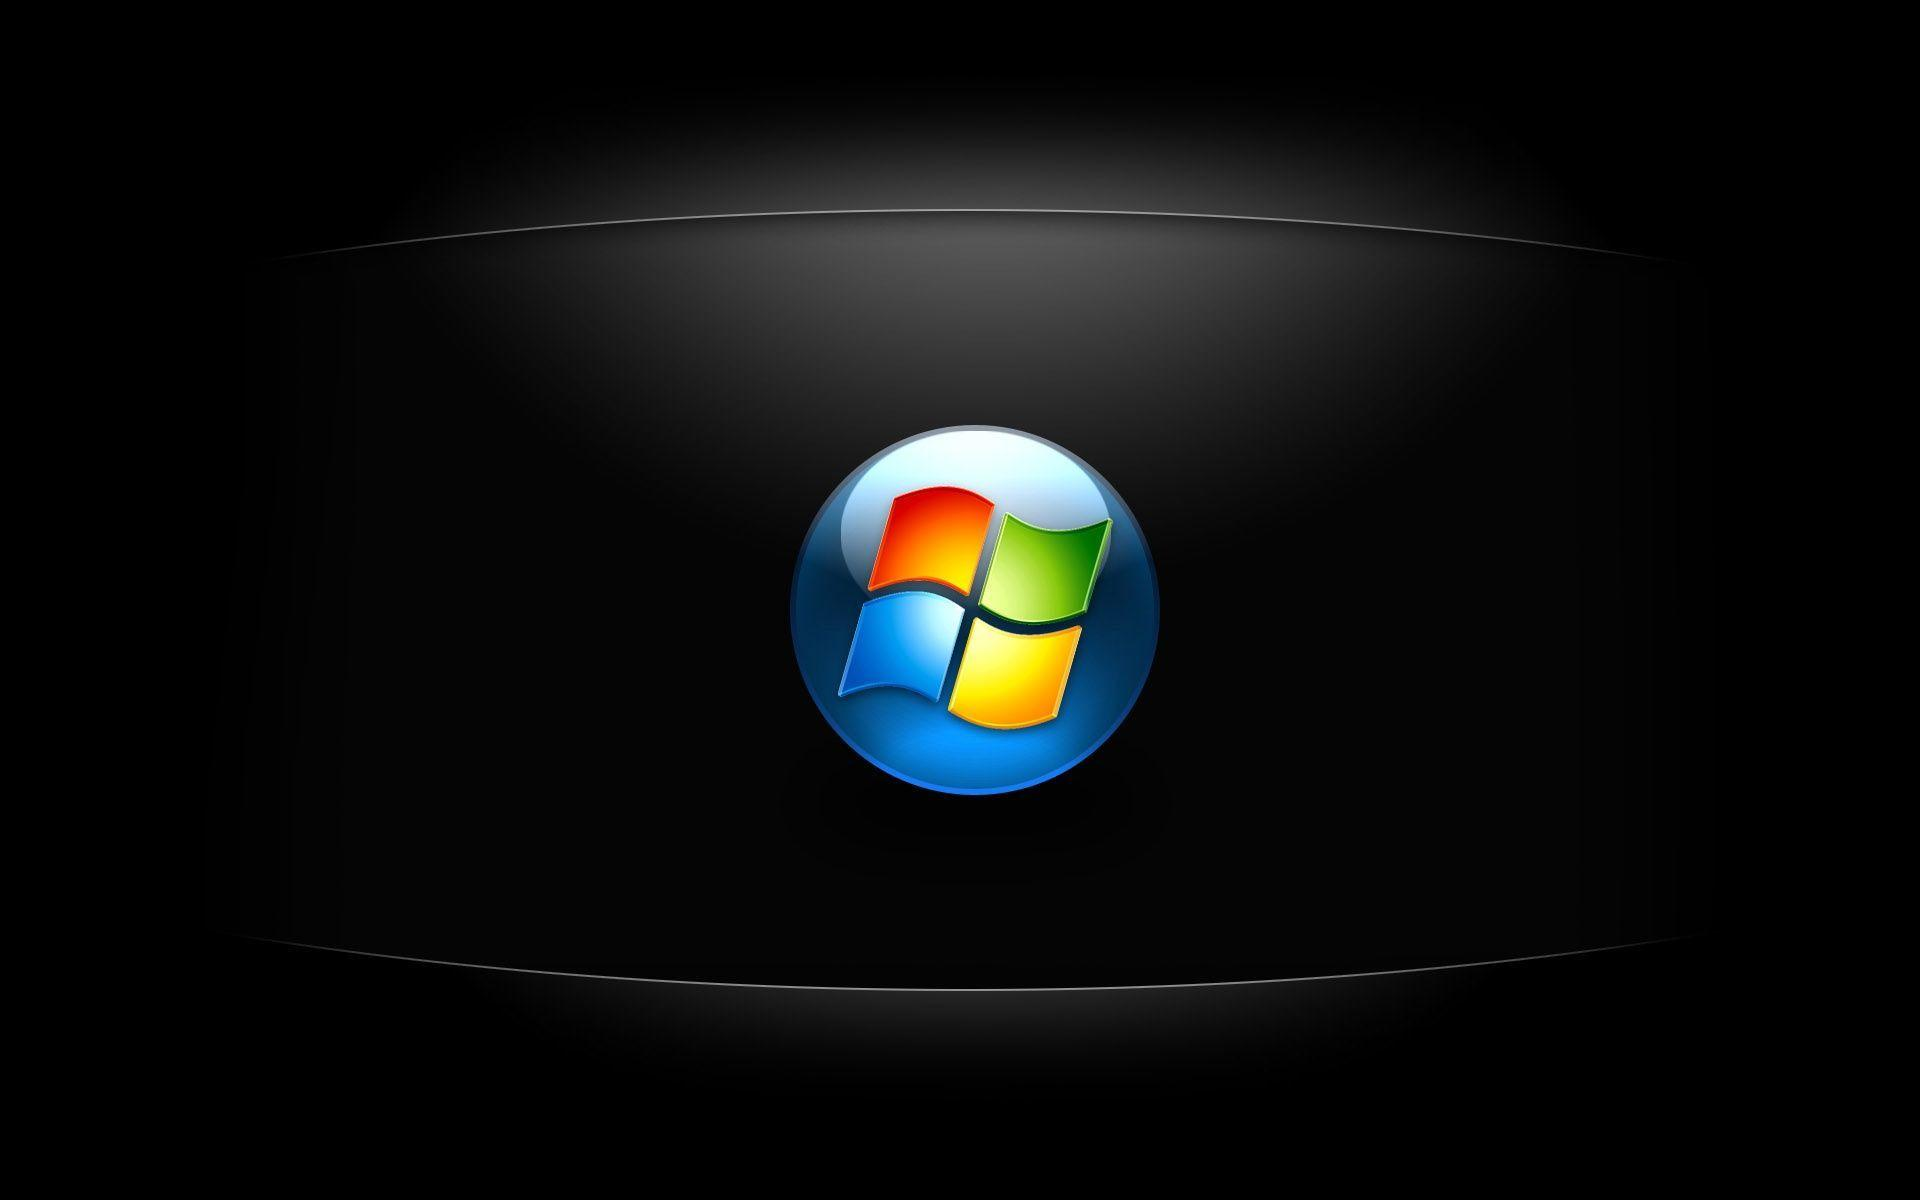 Windows 7 1920x1080 Wallpaper HD - HD Wallpapers|WallForU.com